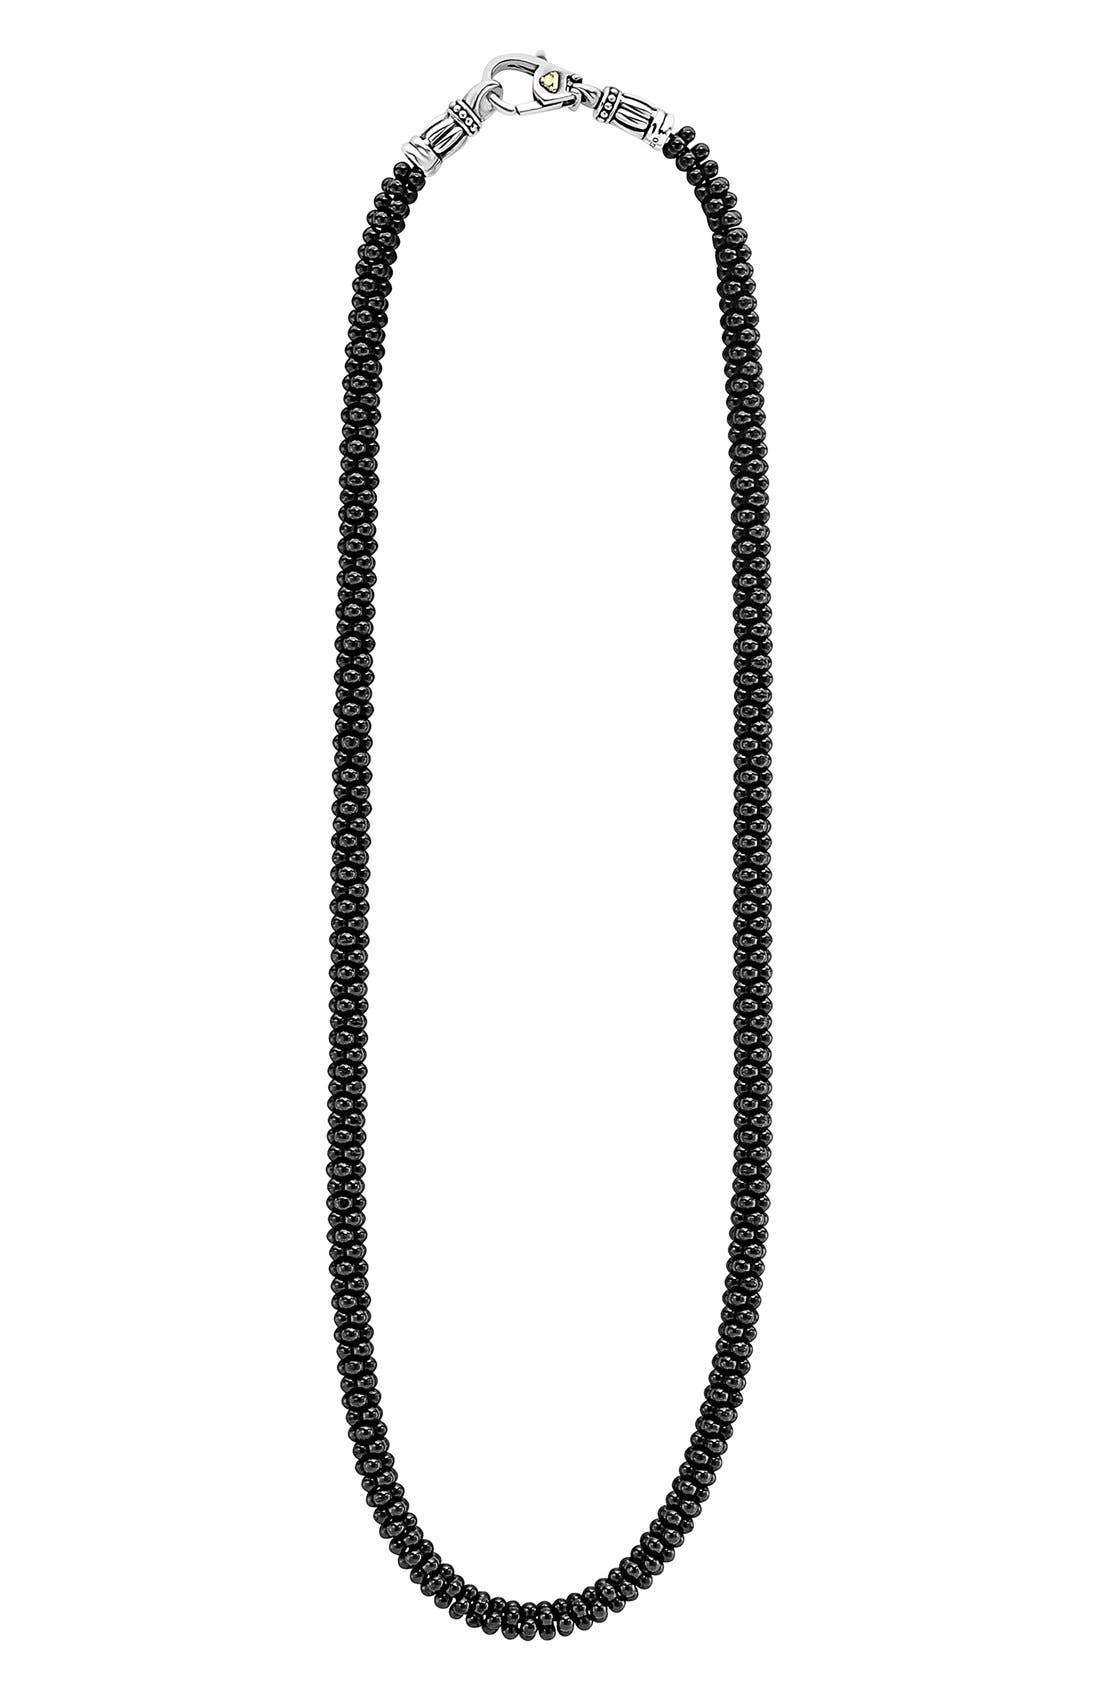 LAGOS 'Black Caviar' 5mm Beaded Necklace